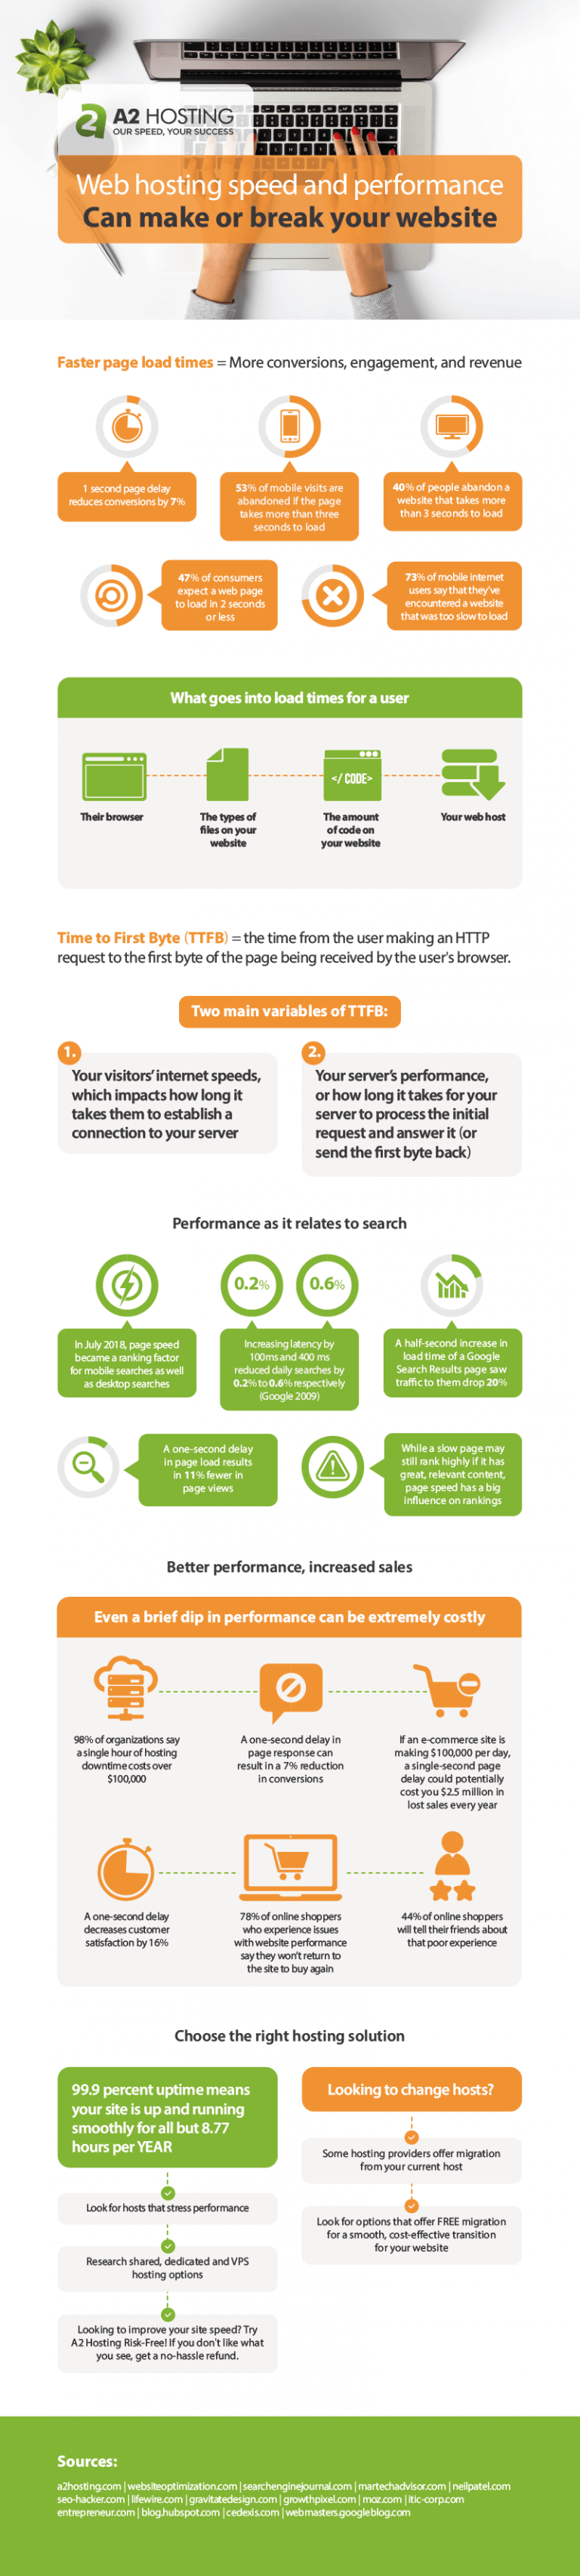 A2-Hosting-Performance-Infographic-plaza